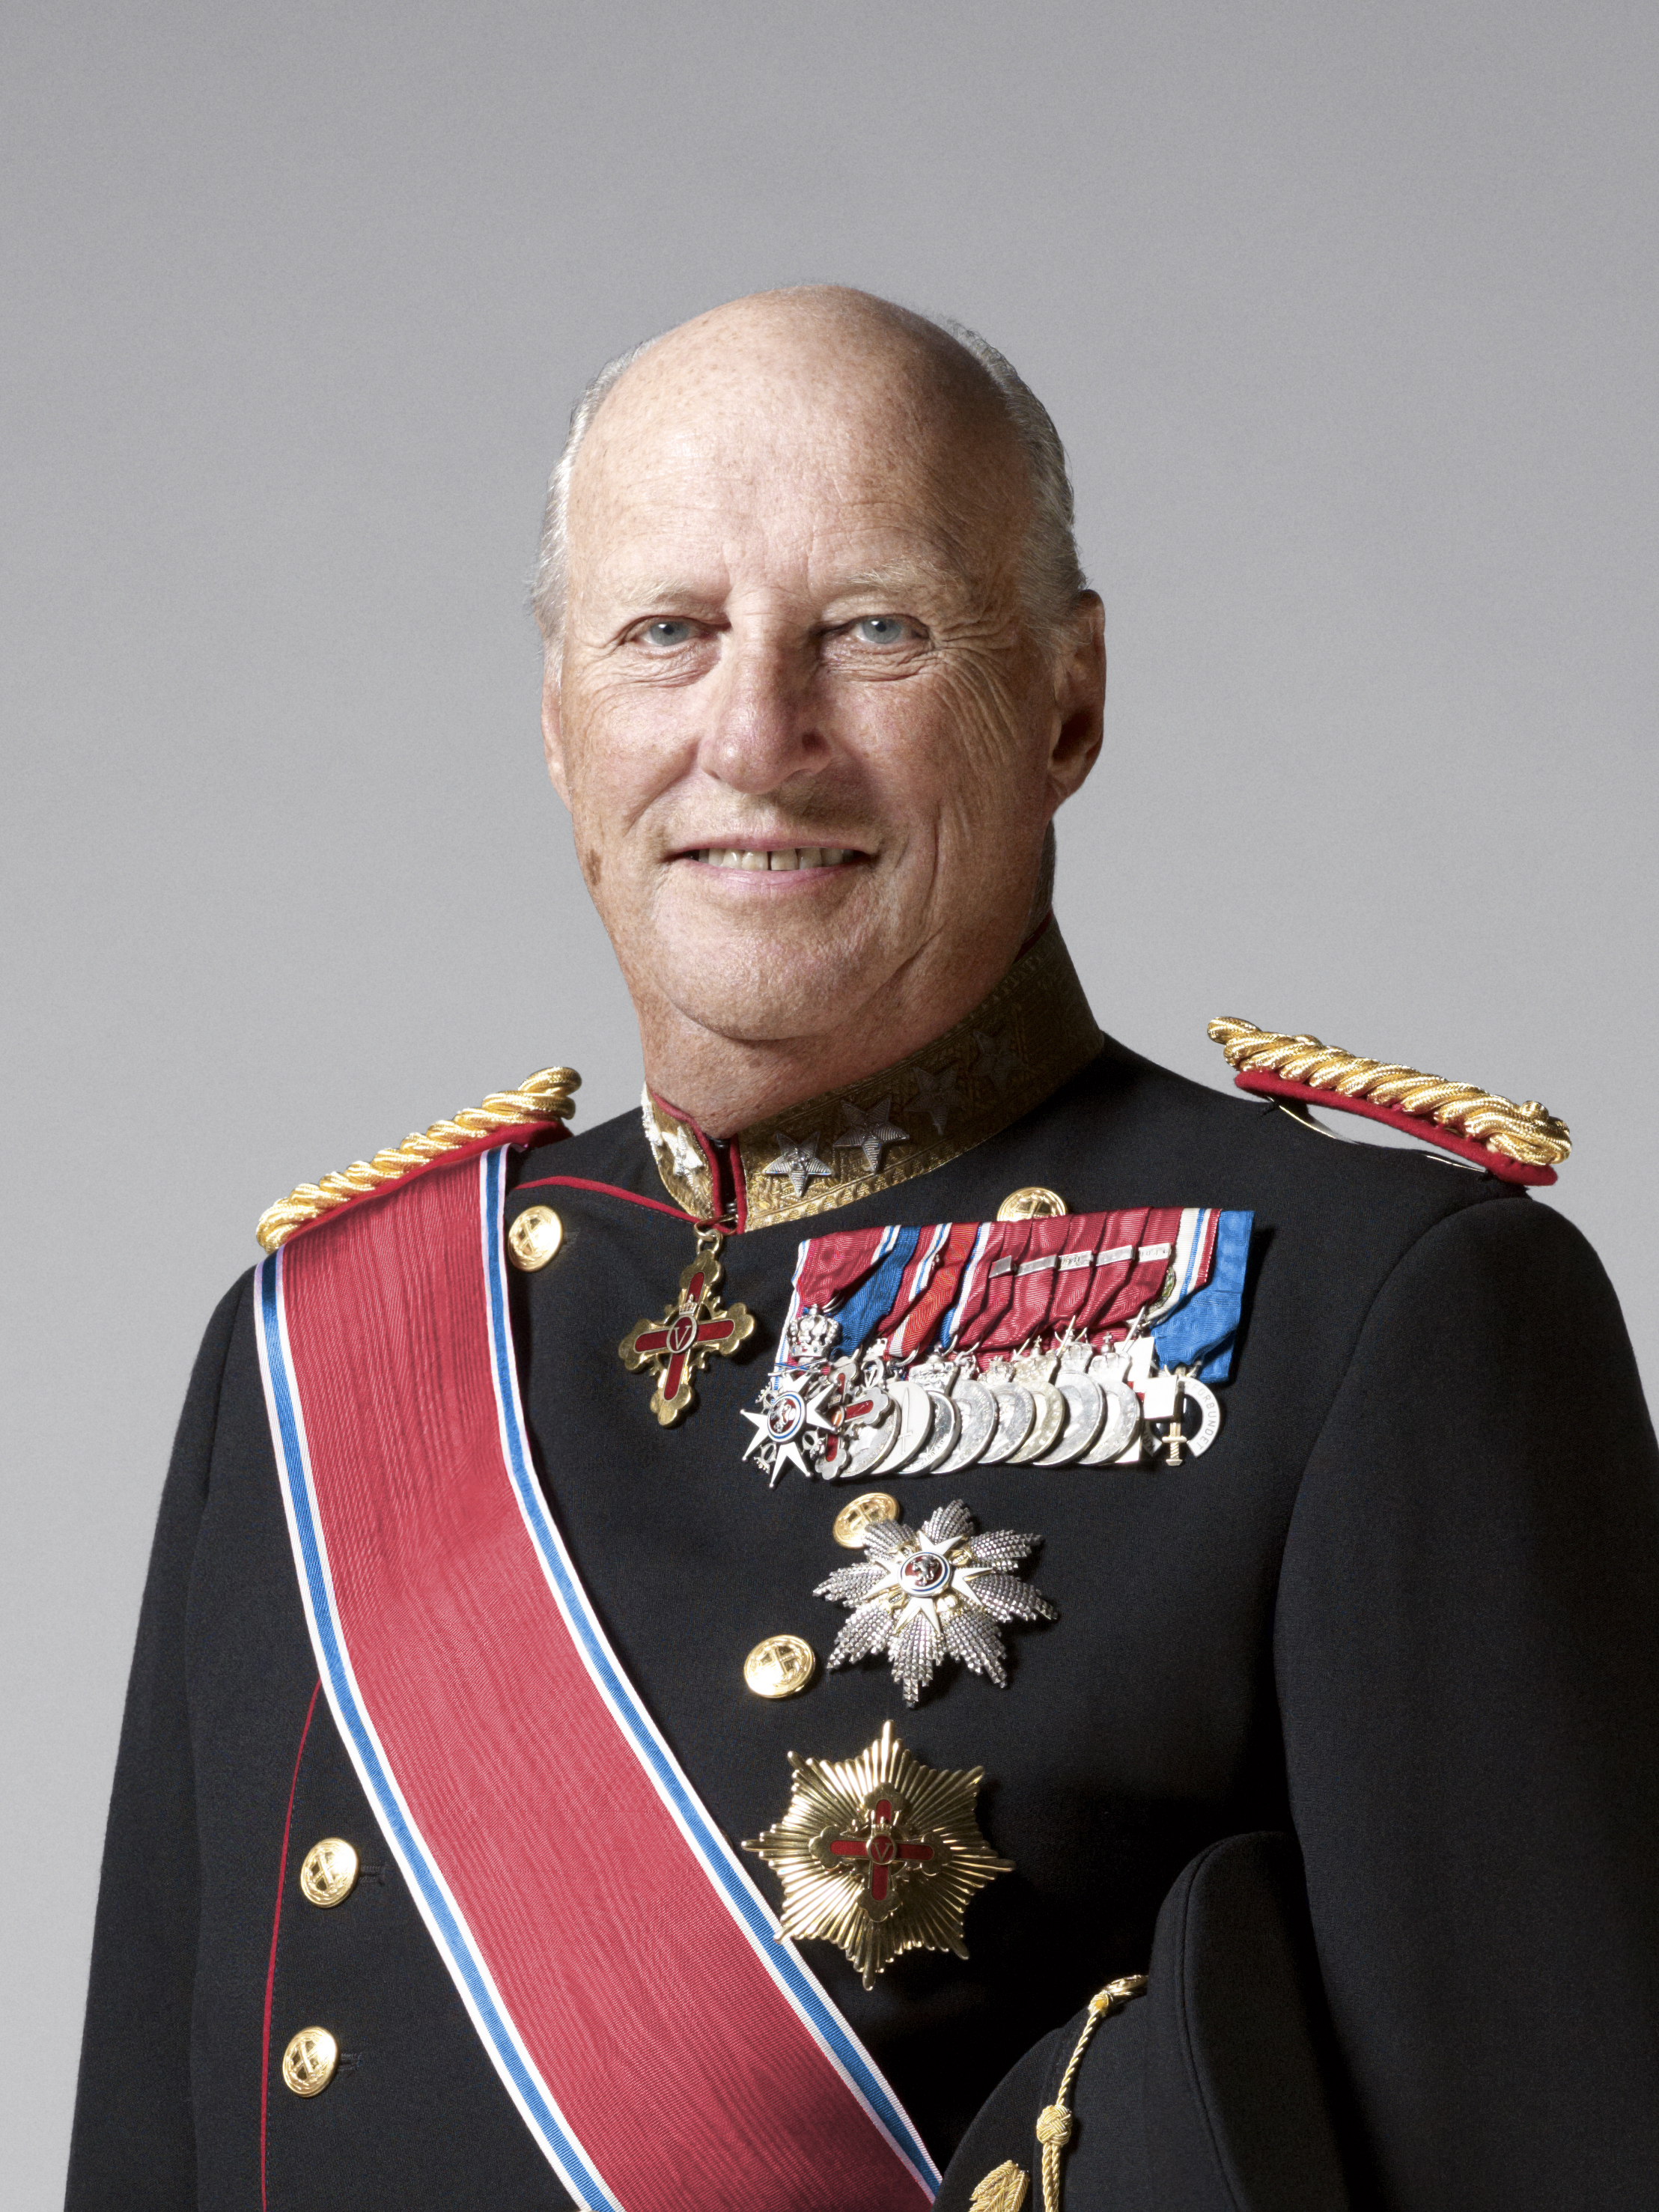 His Majesty King Harald V of Norway